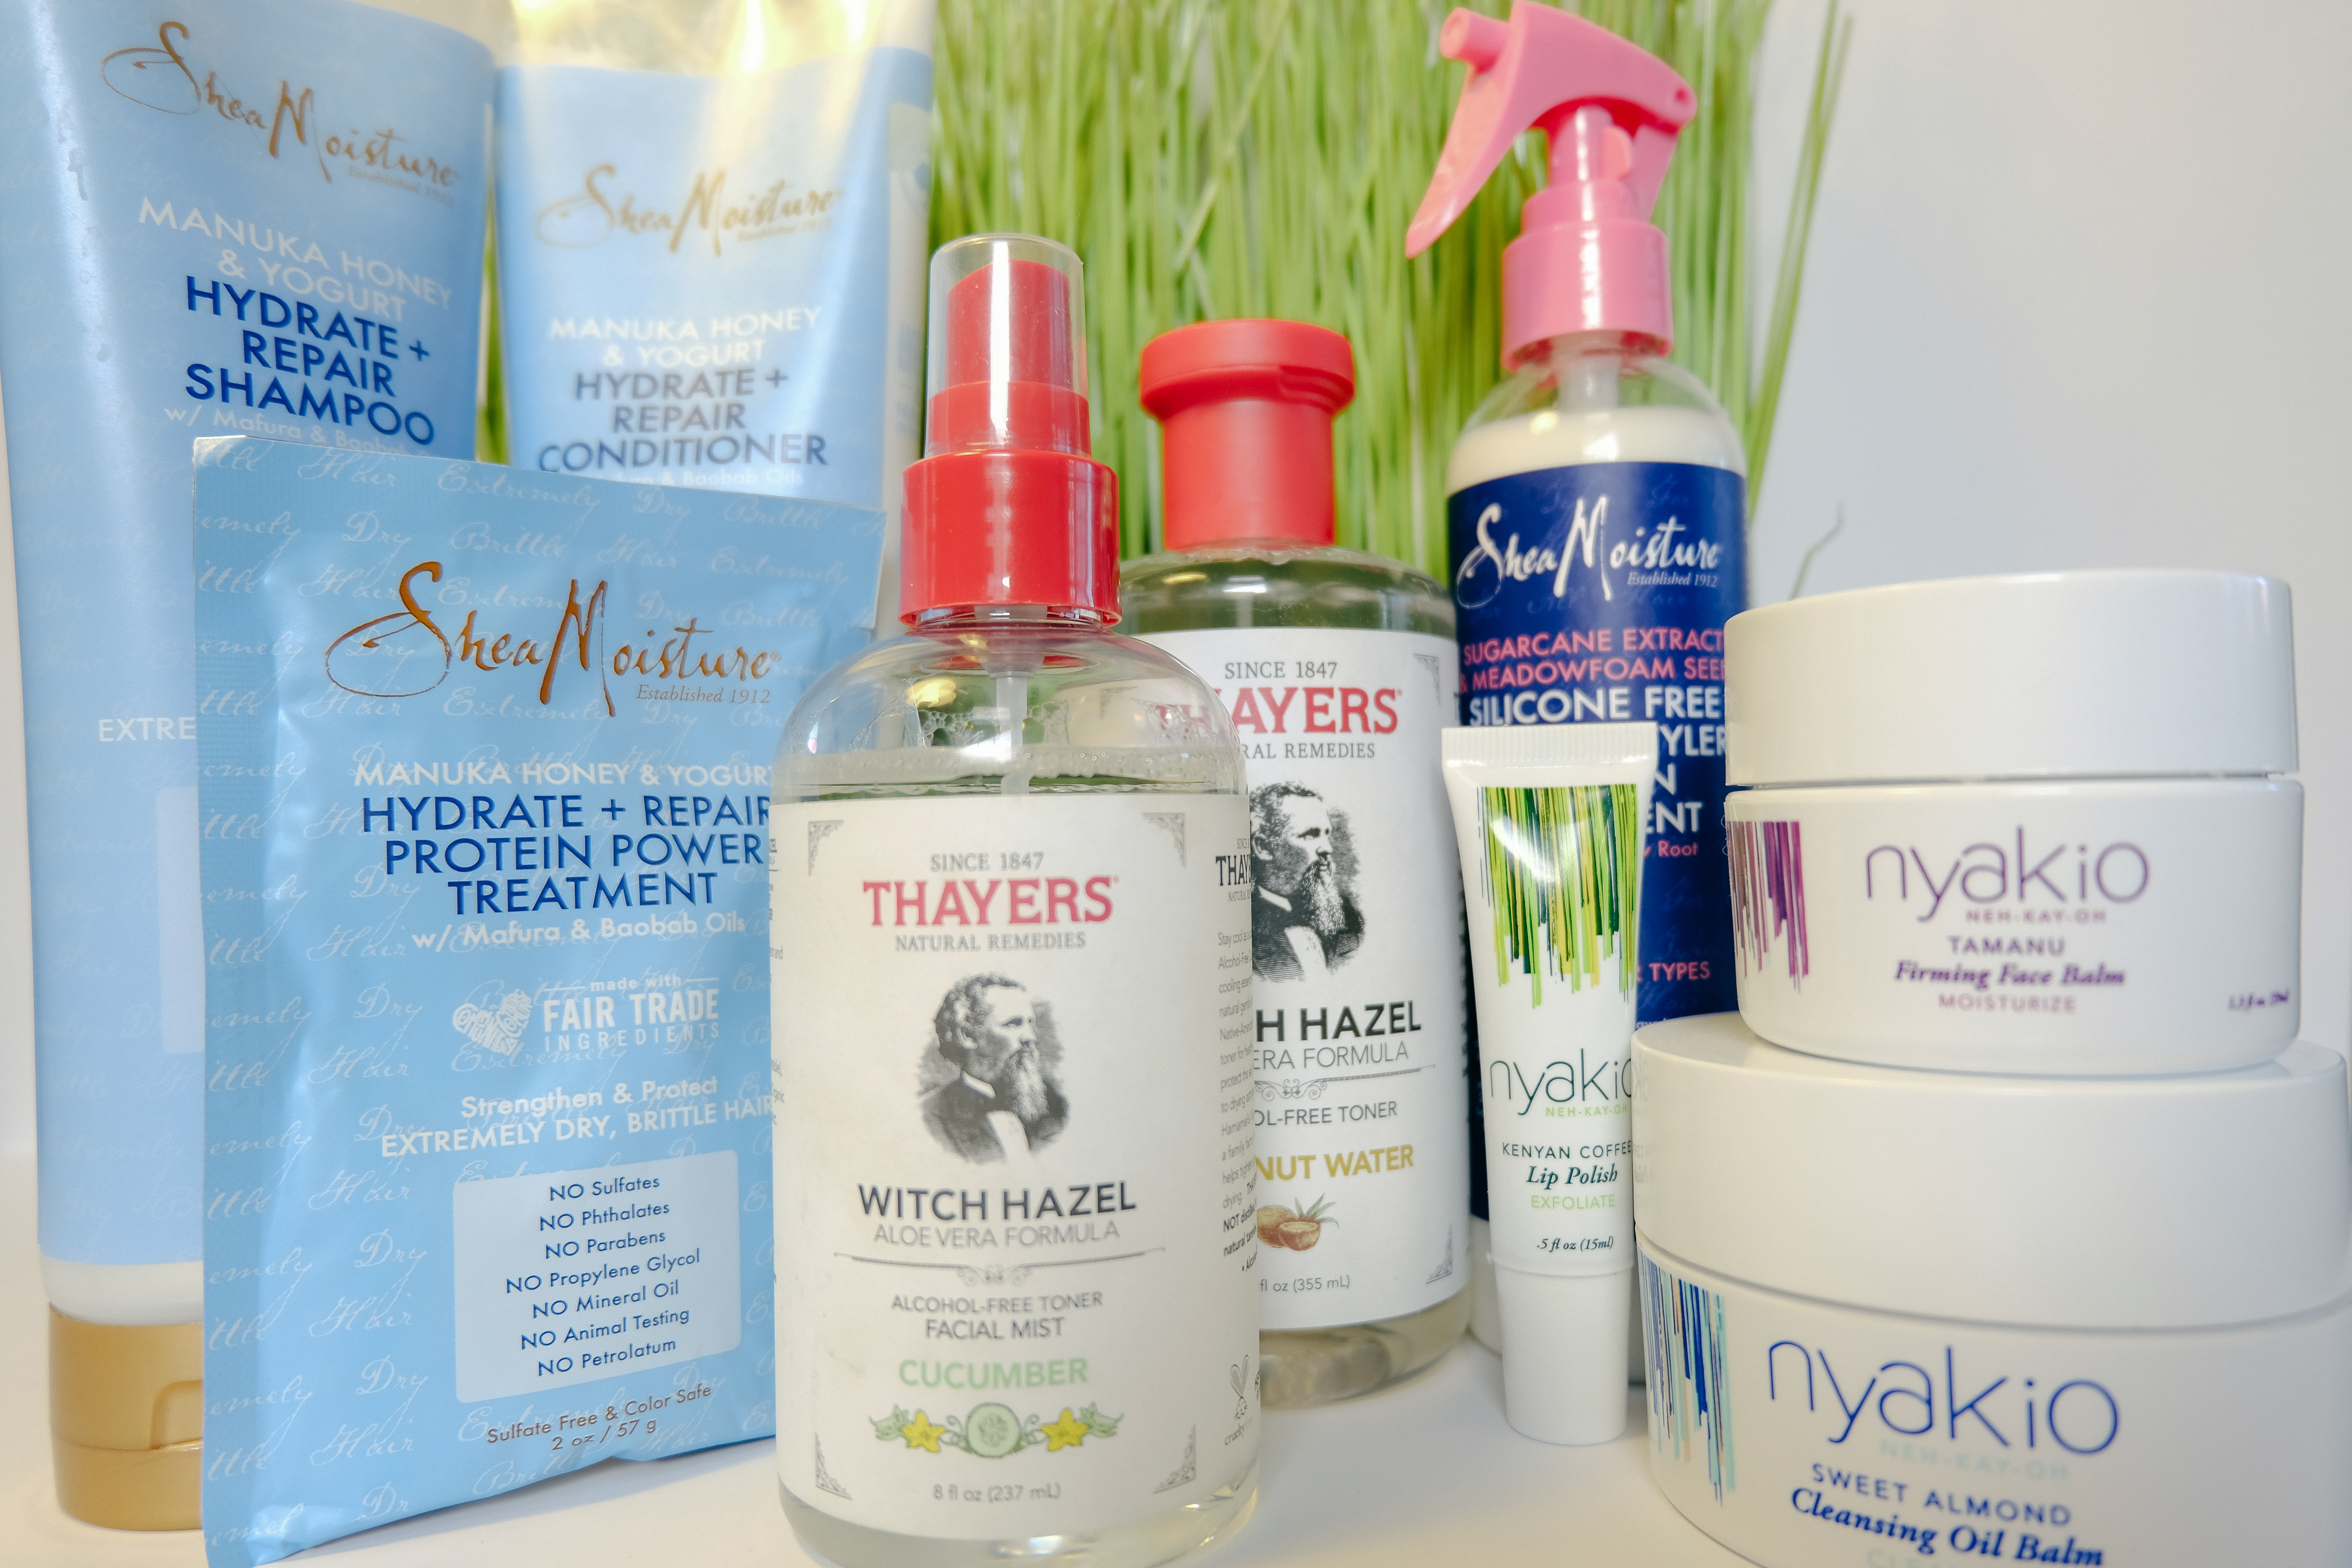 SheaMoisture, Thayers, and Nyakio Skincare and Hair Care Perfect For Dry Hair and Skin #HolyGrail #Skincare #Haircare #Beauty #SheaMoisture #Thayers #Nyakio